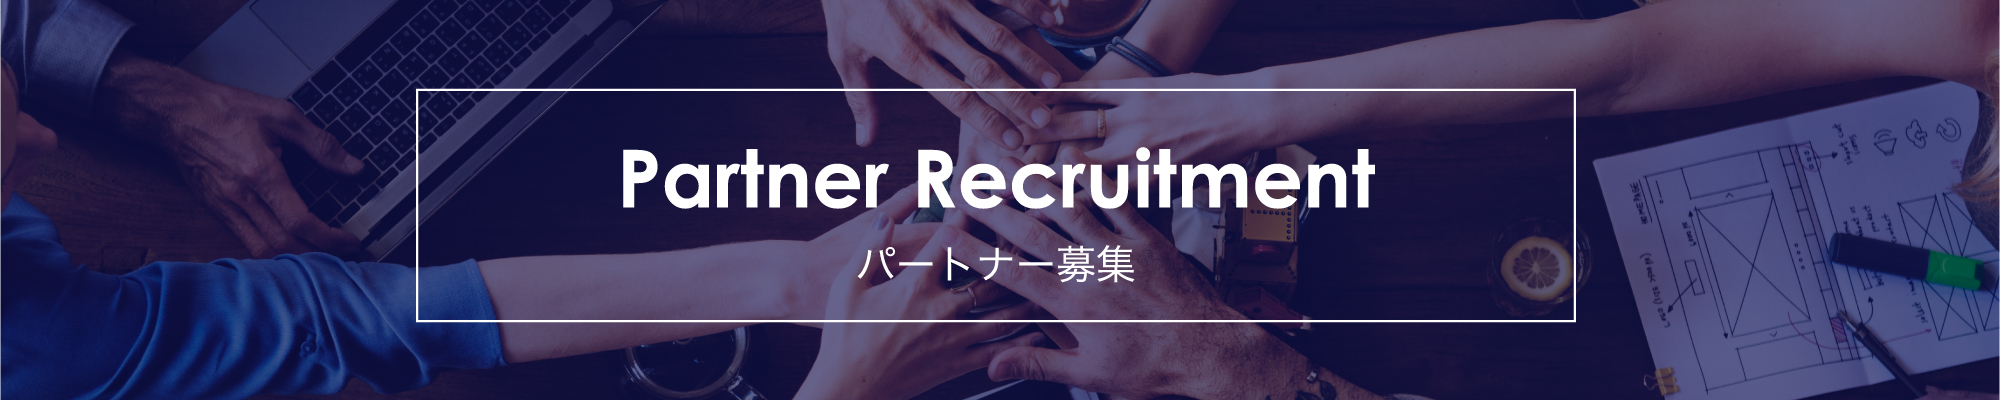 パートナー募集 -Partner Recruitment-